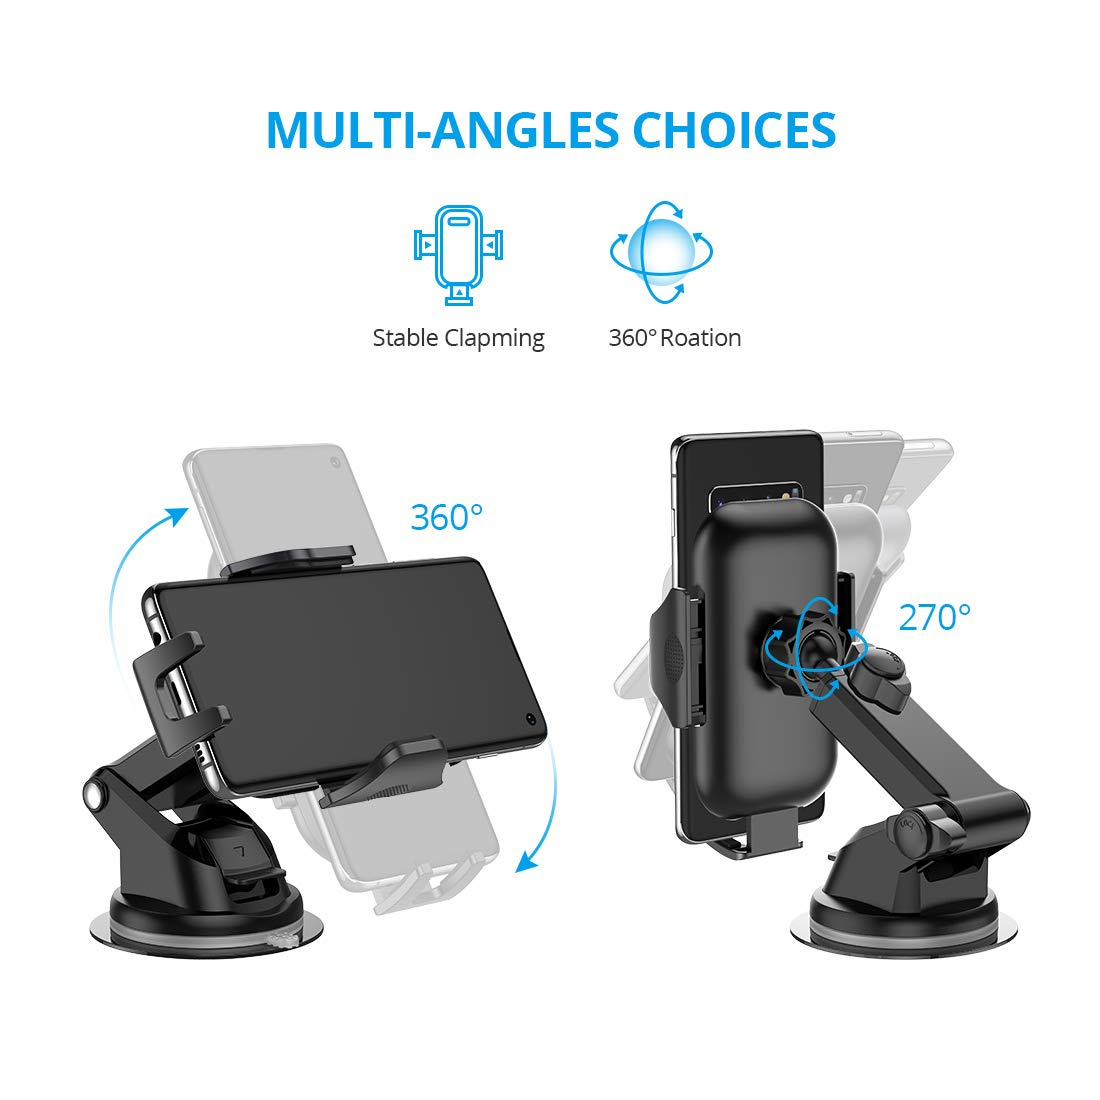 Universal Car Phone Mount VICSEED Car Phone Holder for Car Dashboard Windshield Air Vent Adjustable Long Arm Strong Suction Cell Phone Car Mount Fit for iPhone X XS Max XR 8 Plus Samsung Galaxy S10 S9